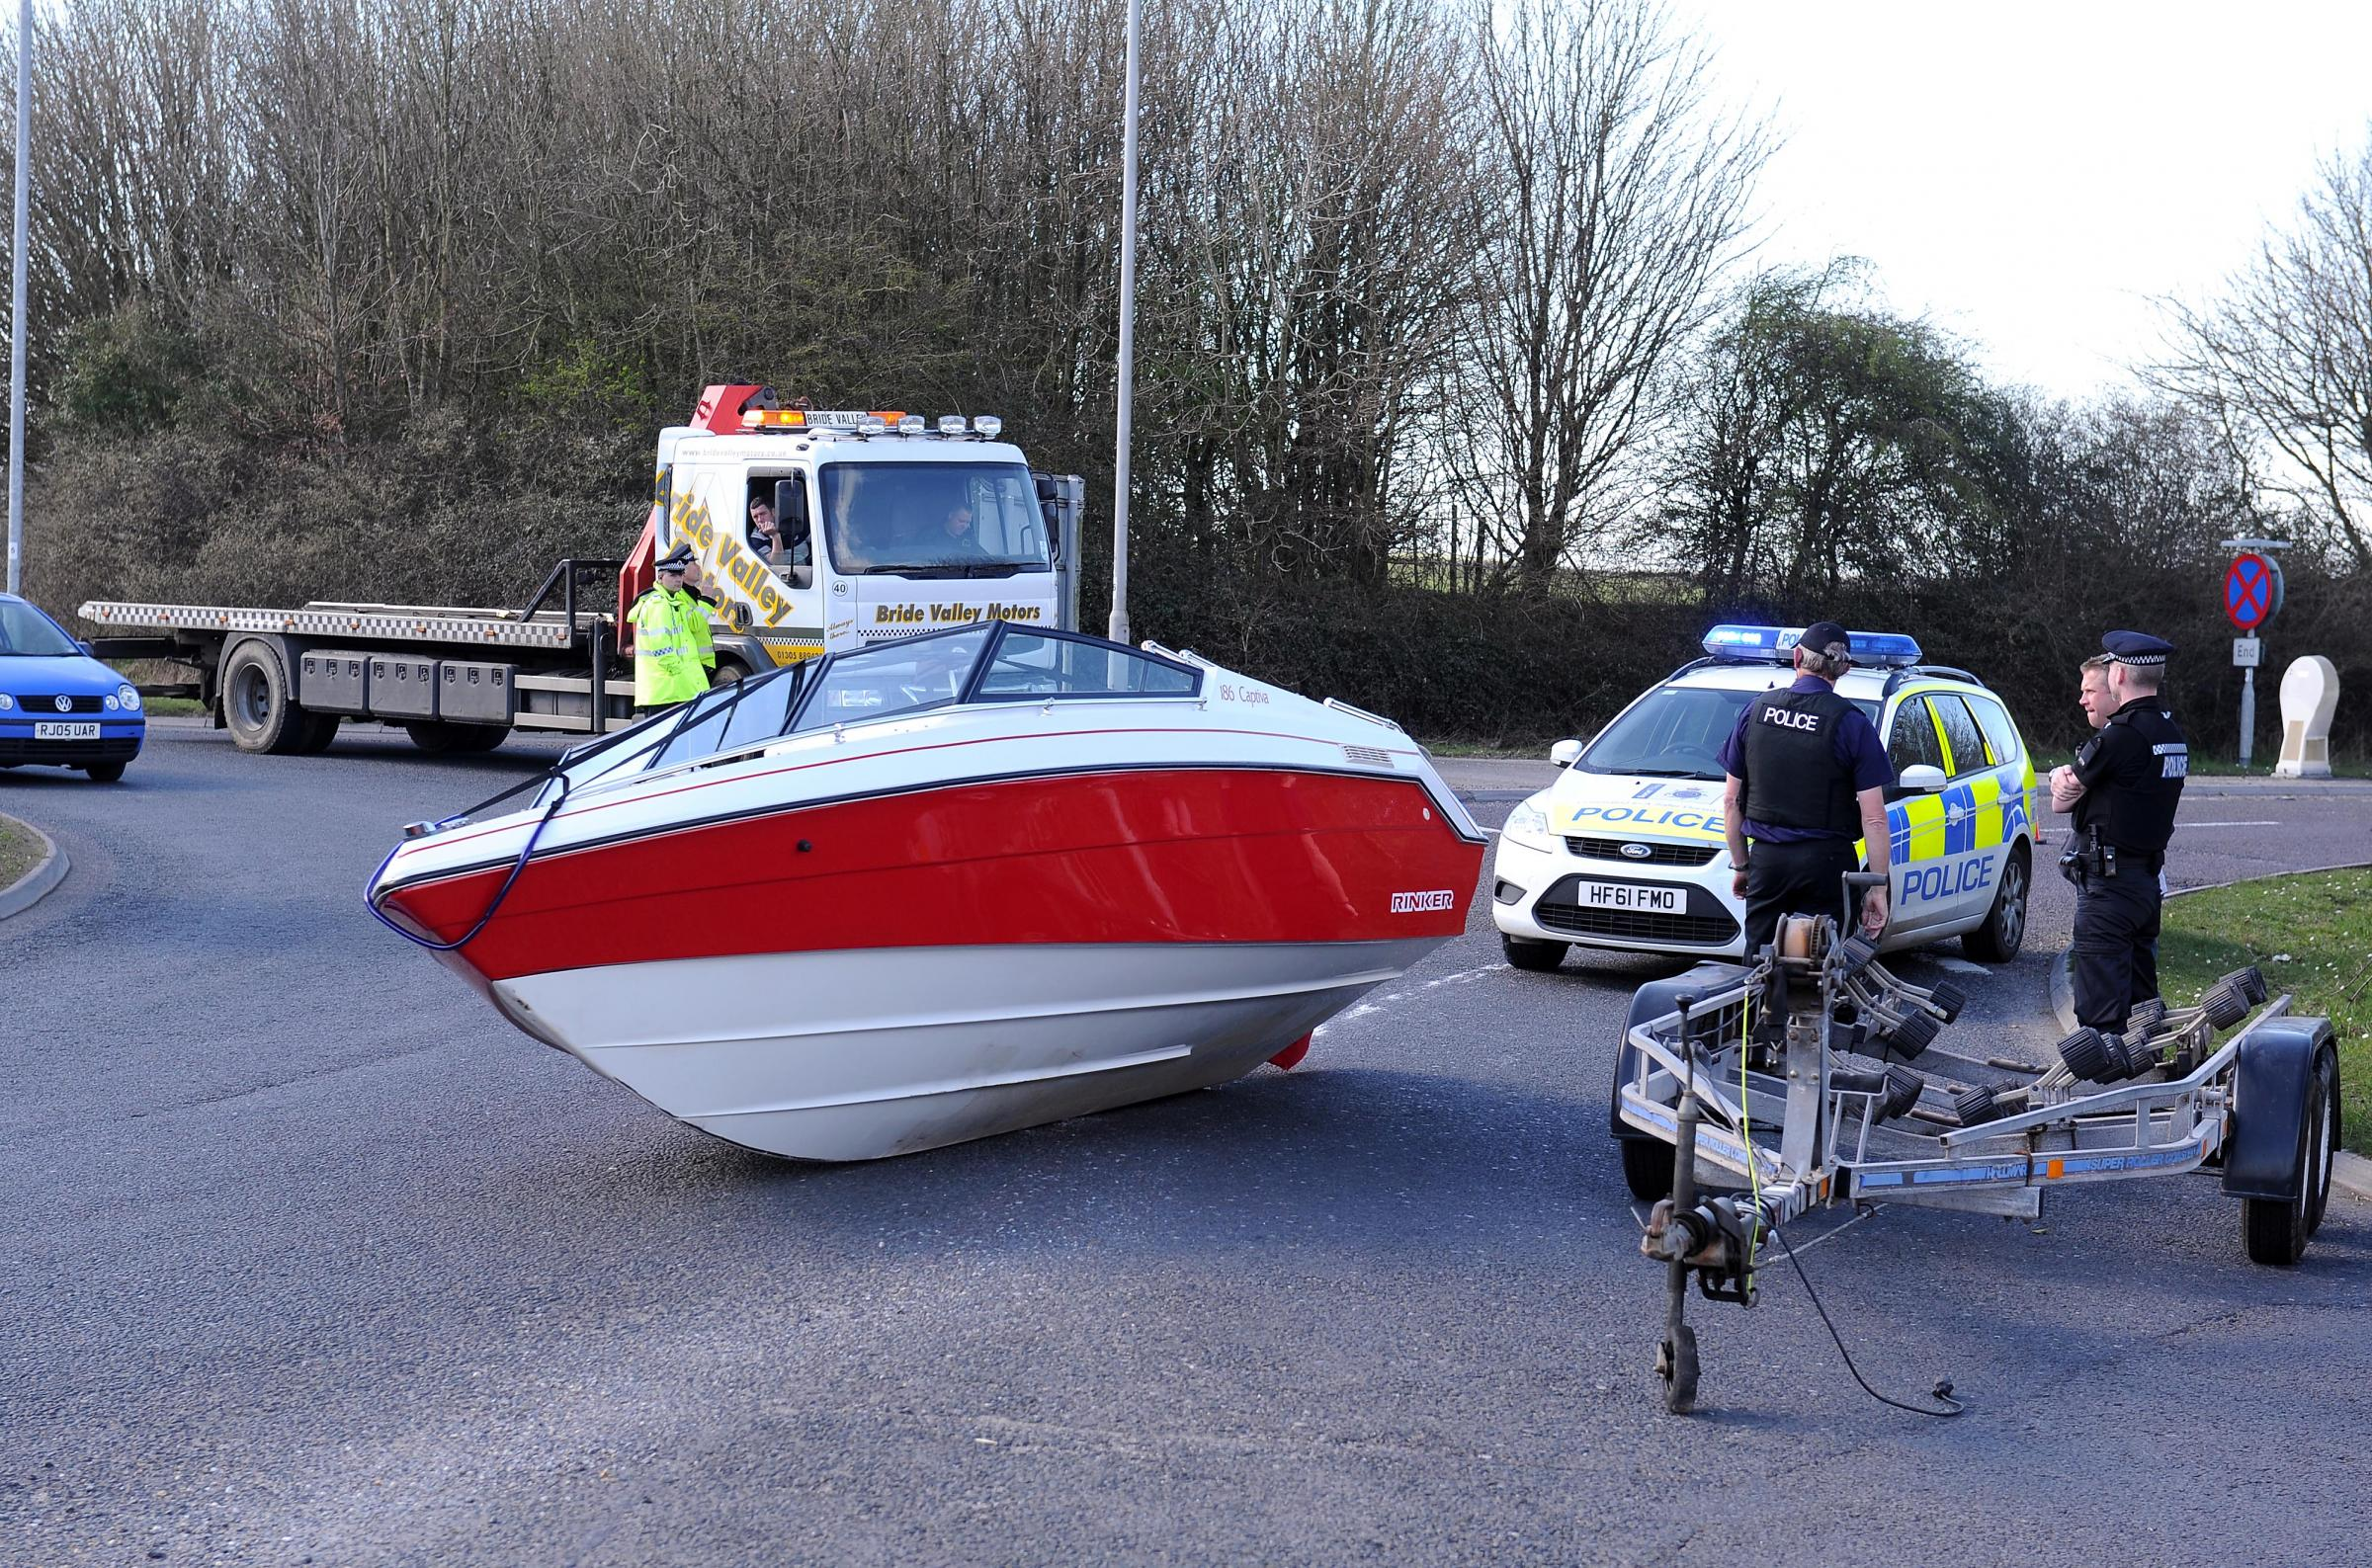 OBSTRUCTION: The speedboat at the roundabout. Picture by Finnbarr Webster